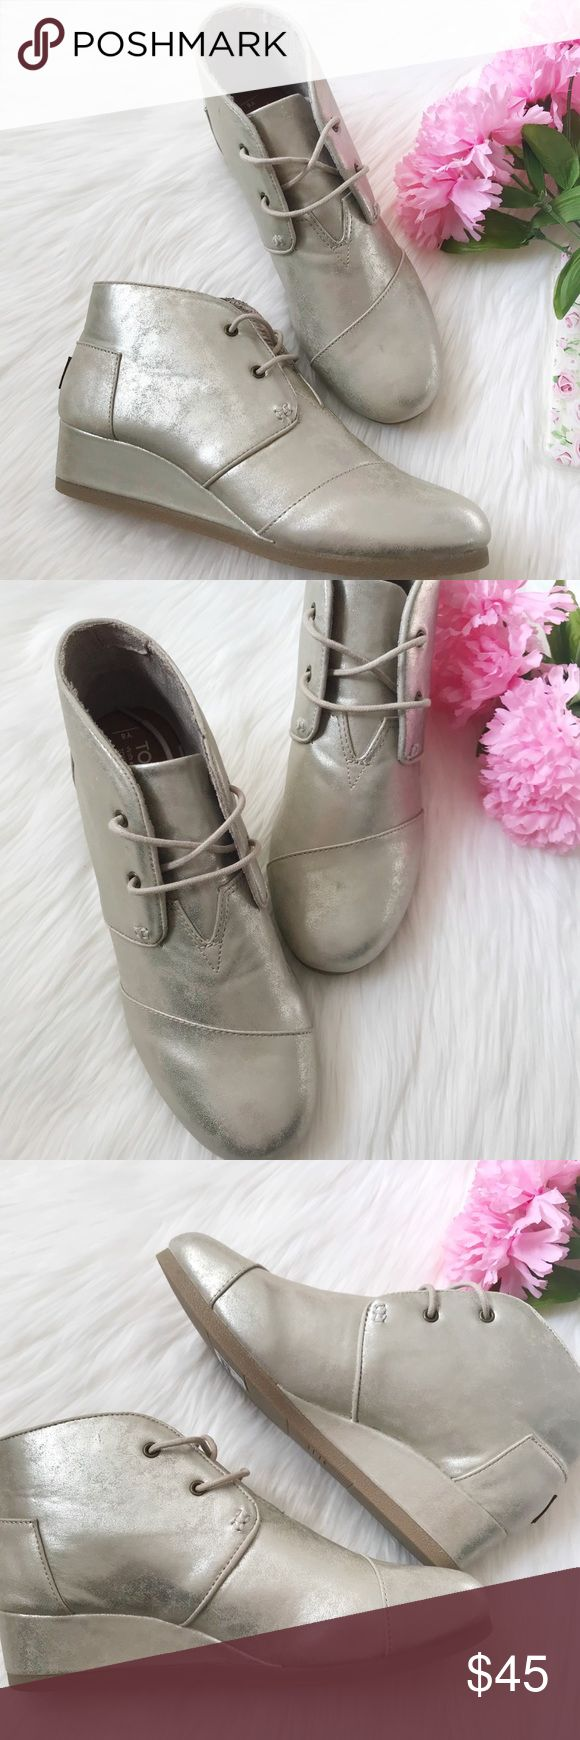 Toms Metallic Wedge Booties Toms Metallic wedge booties  Ankle bootie Cord laces with metal tips  New without box  Size 6 Toms Shoes Ankle Boots & Booties